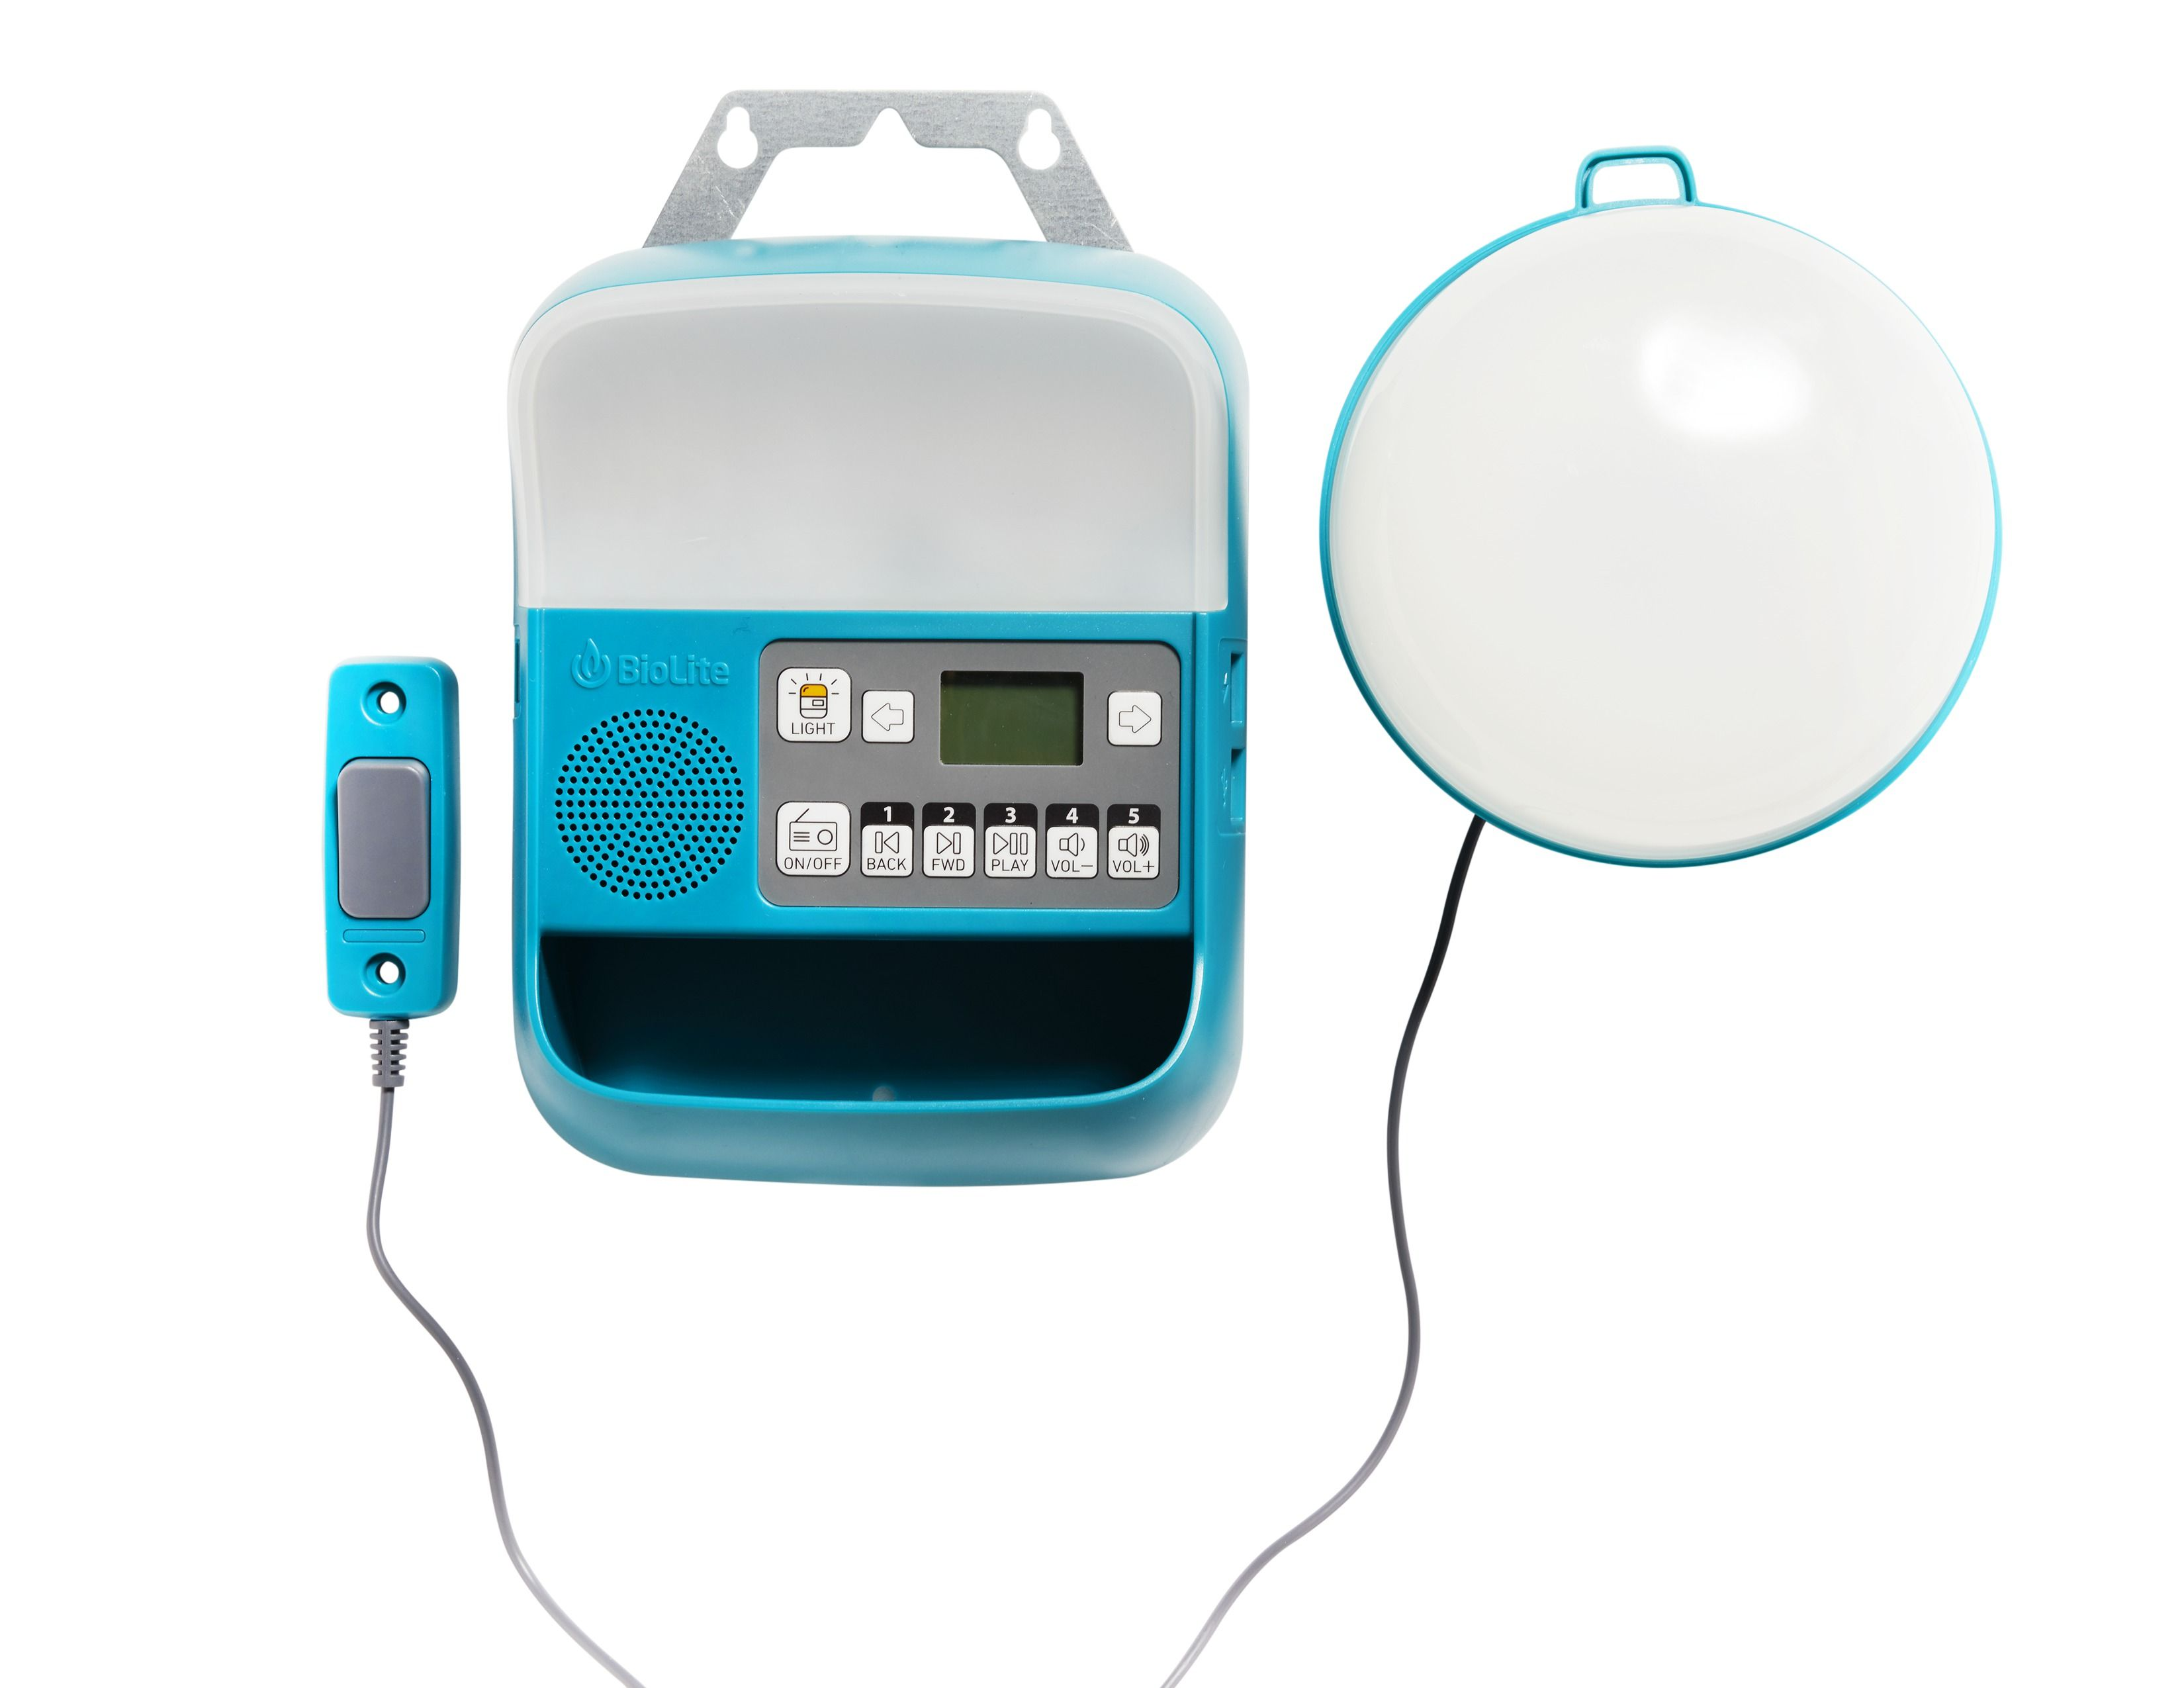 This Solar-Powered Light/Radio Is Perfect for Your Next Power Outage